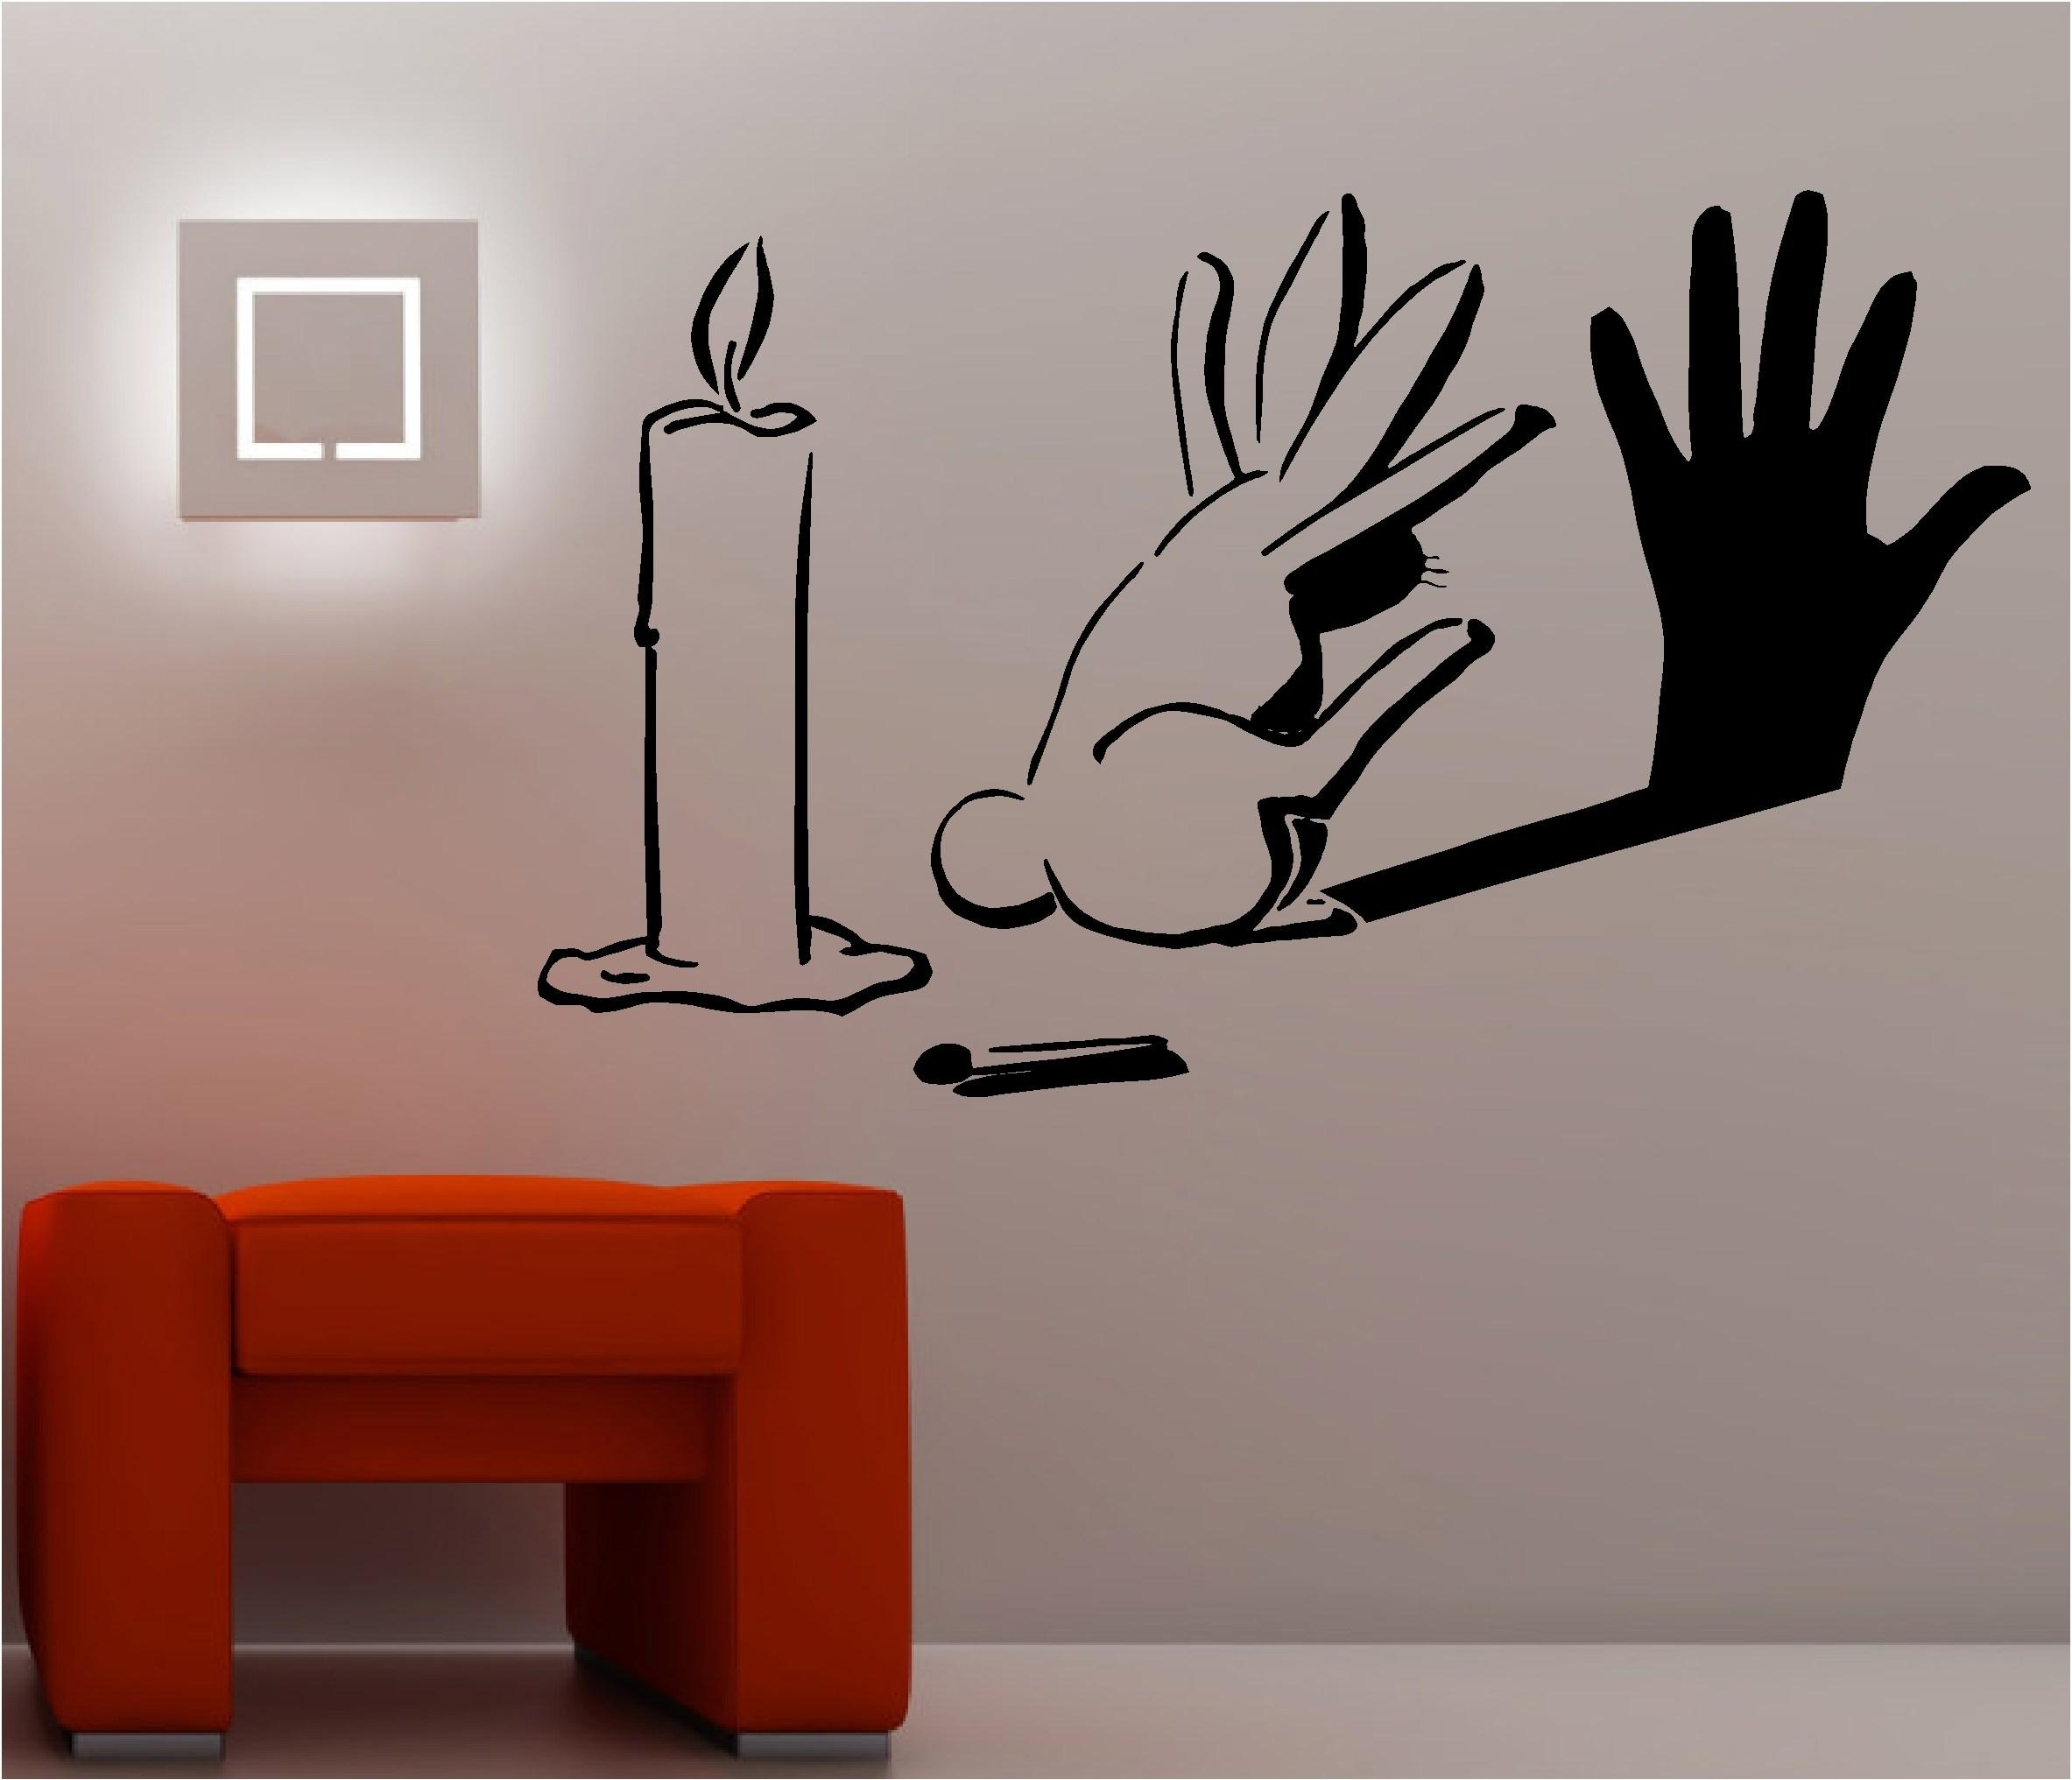 Outstanding Cool Wall Art Ideas For Guys Bedroom Cool Paint Ideas Intended For Wall Art For Guys (View 7 of 20)